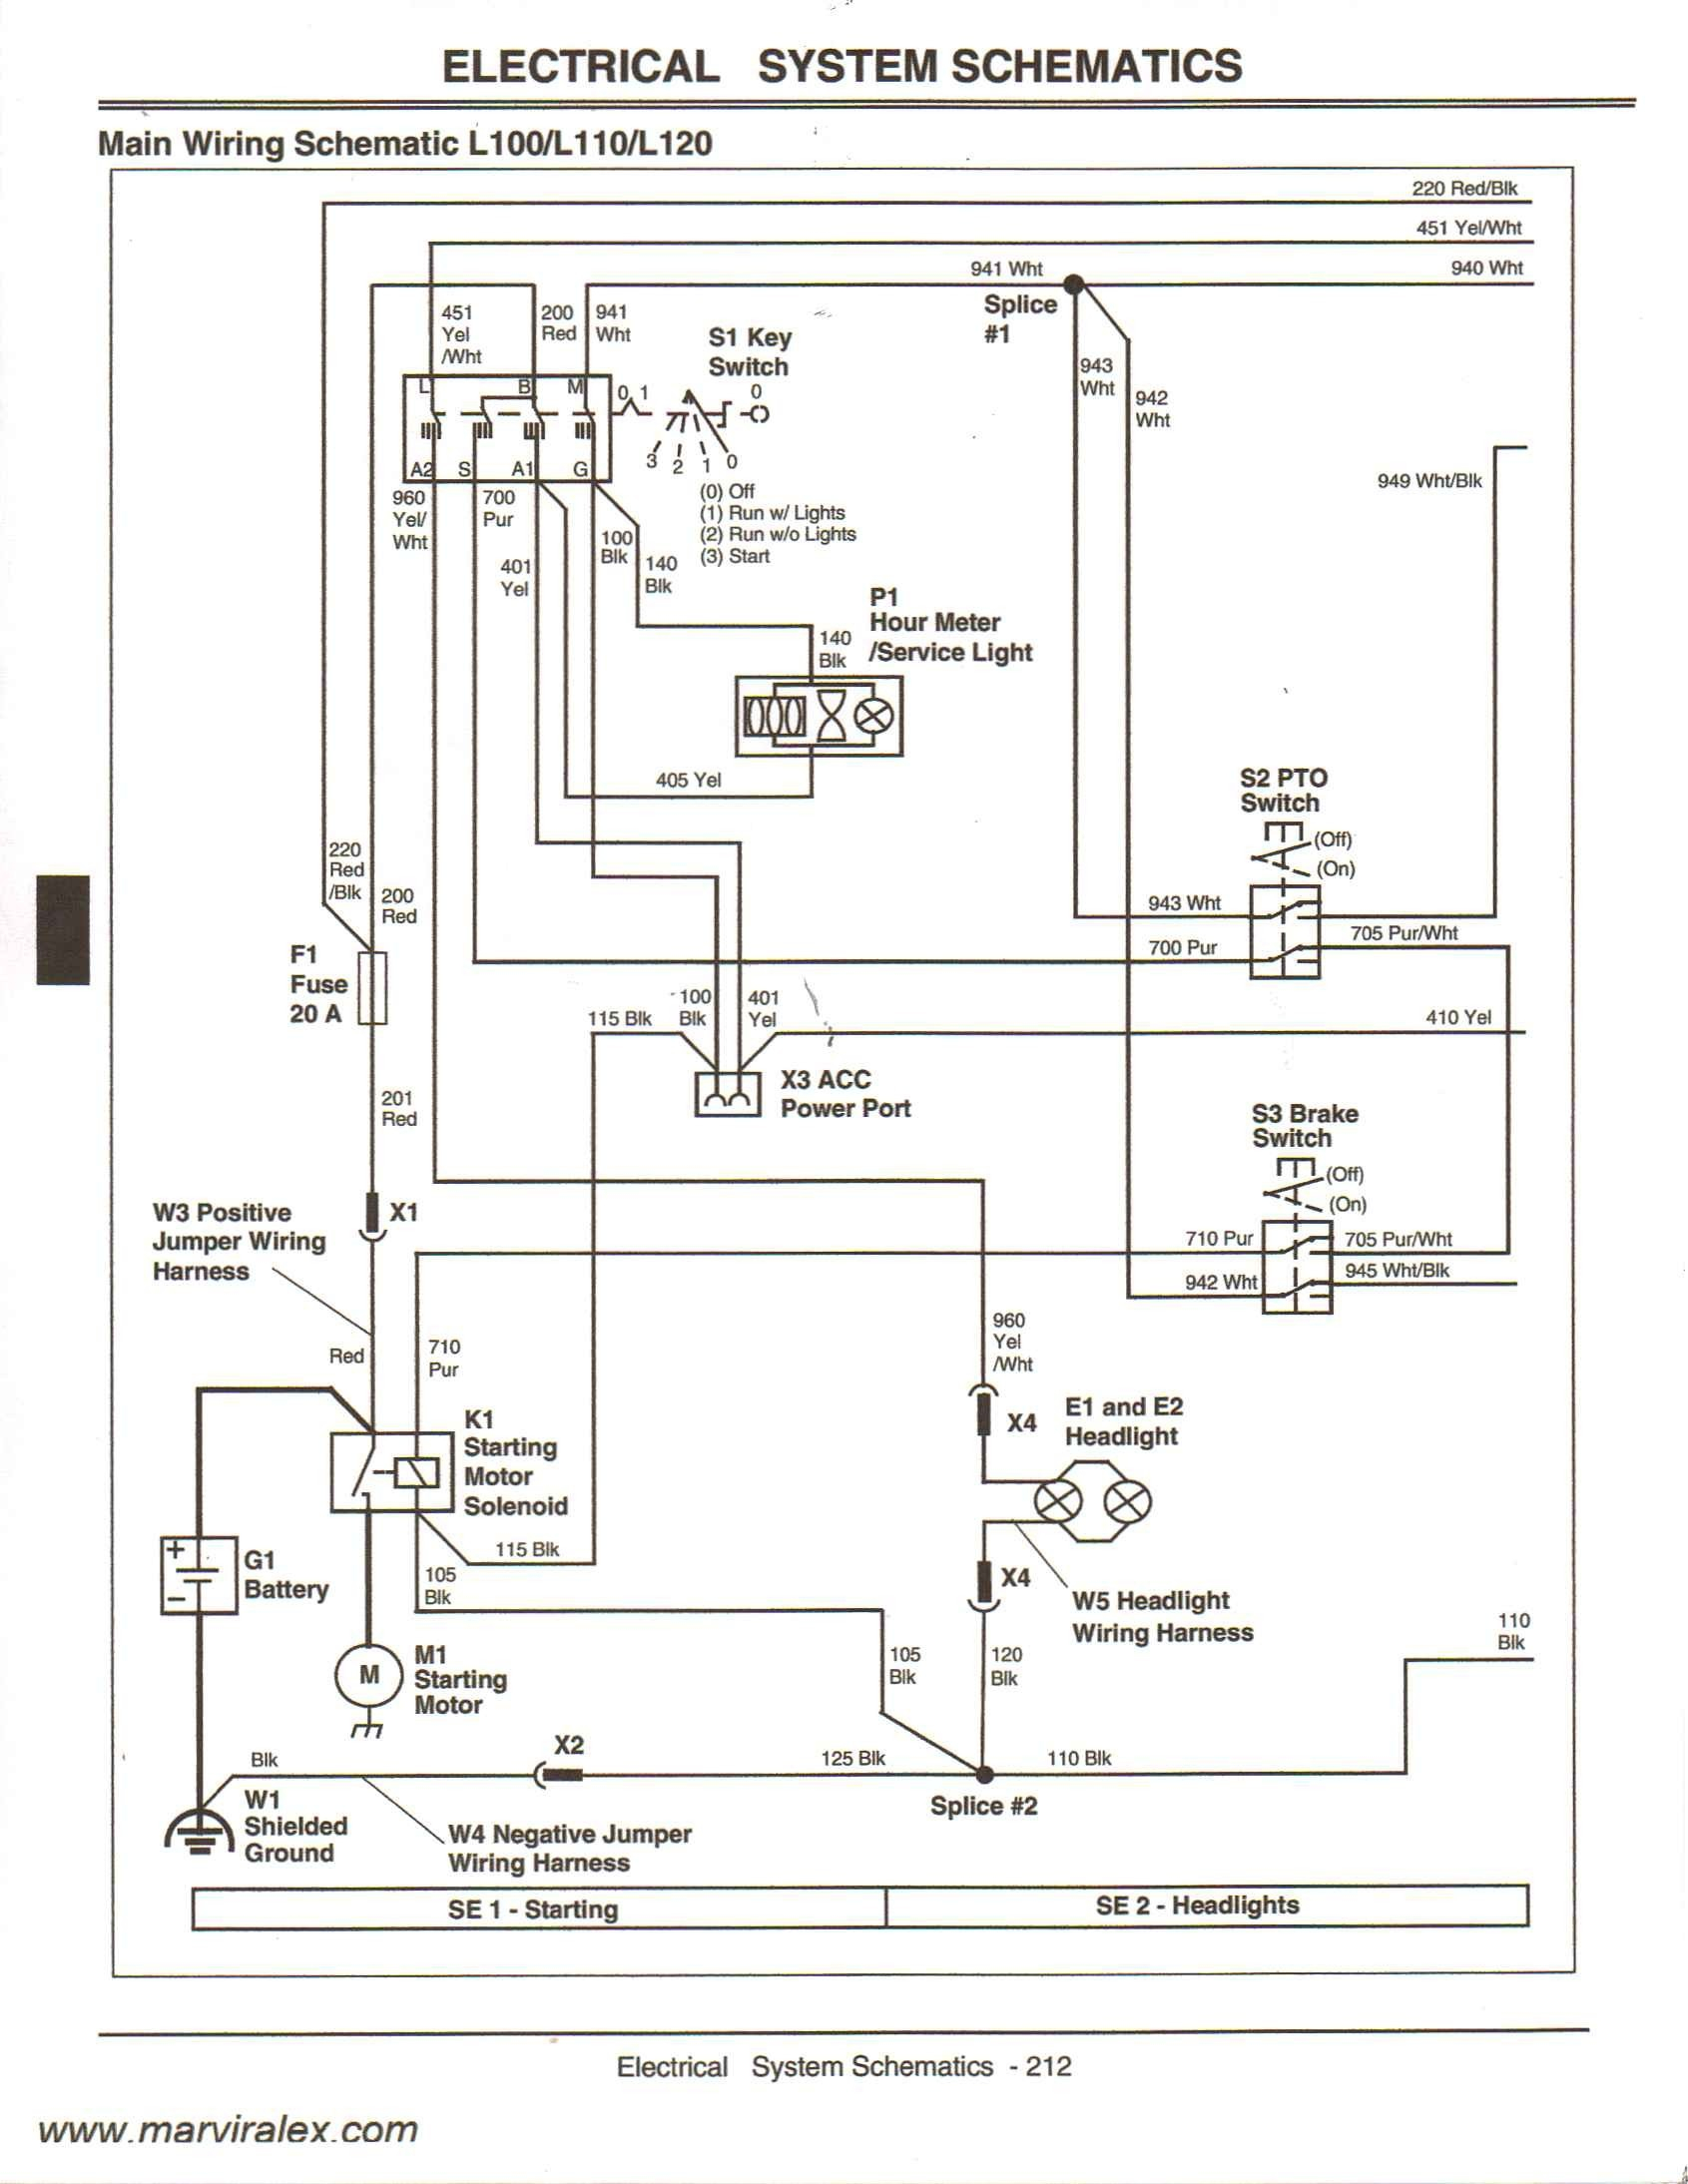 Wiring Diagram for John Deere Riding Lawn Mower - John Deere 318 Ignition  Switch Wiring Diagram